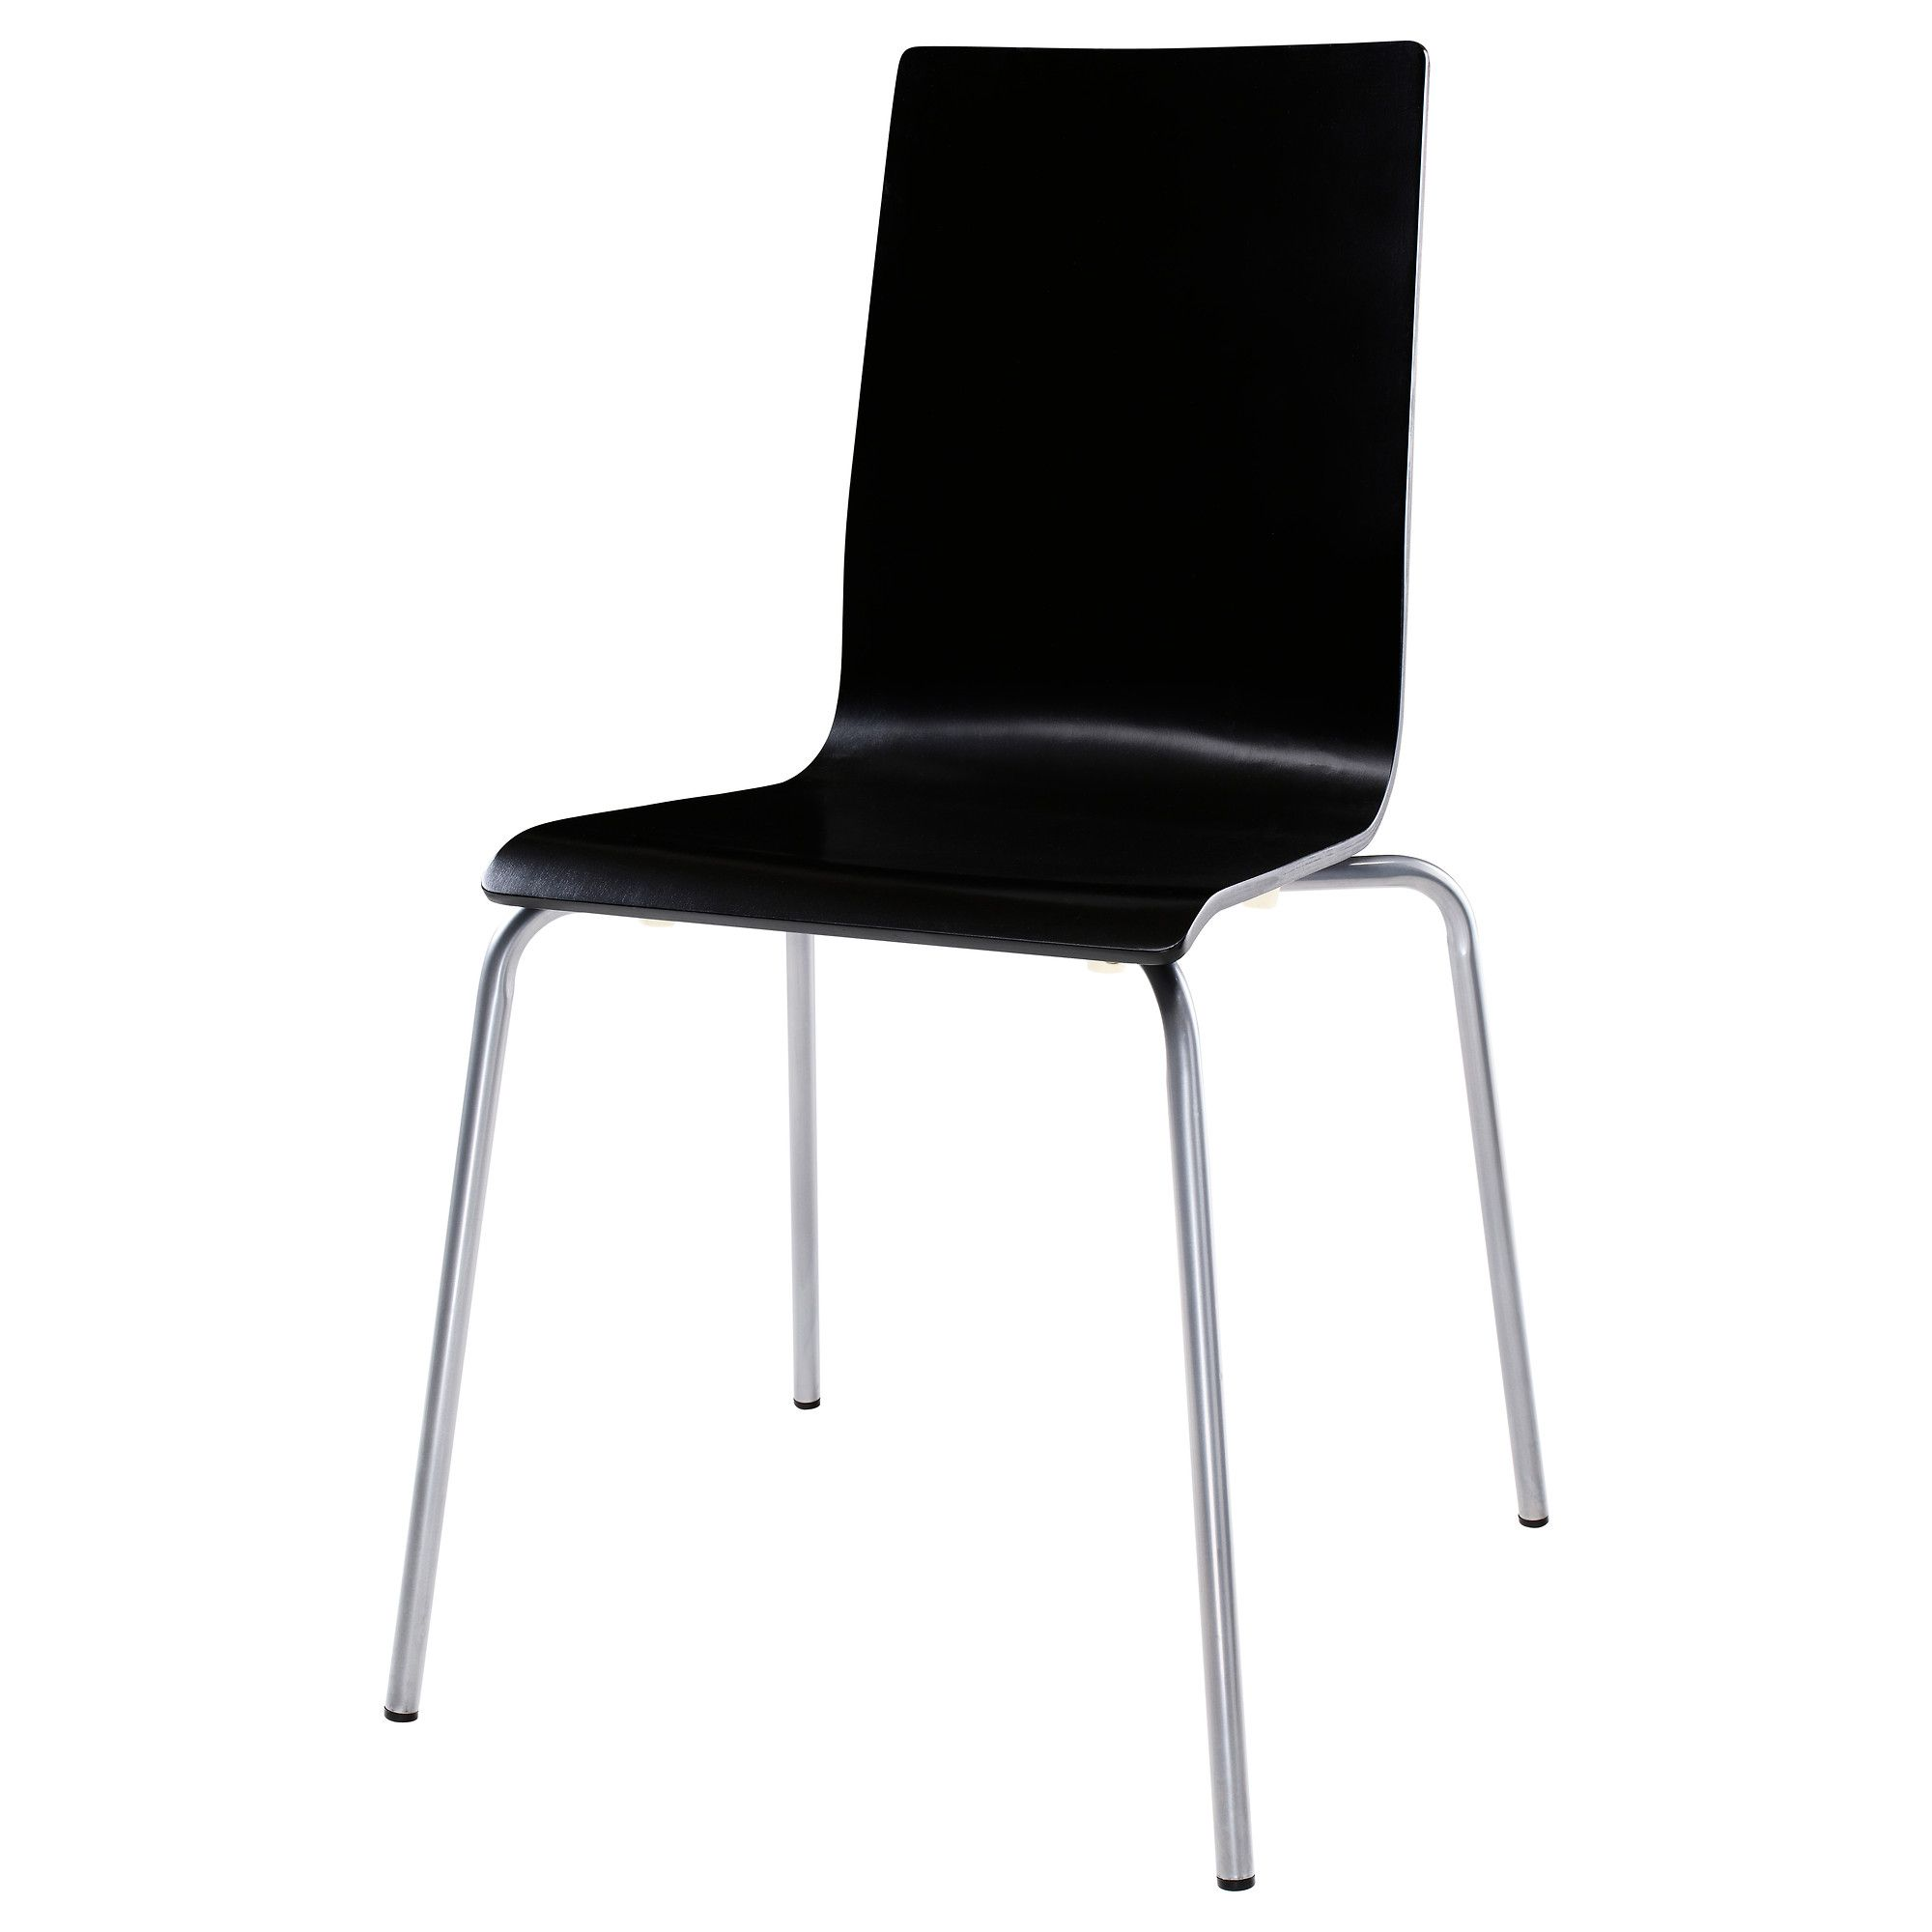 Furniture And Home Furnishings Ikea Dining Chair Ikea Dining